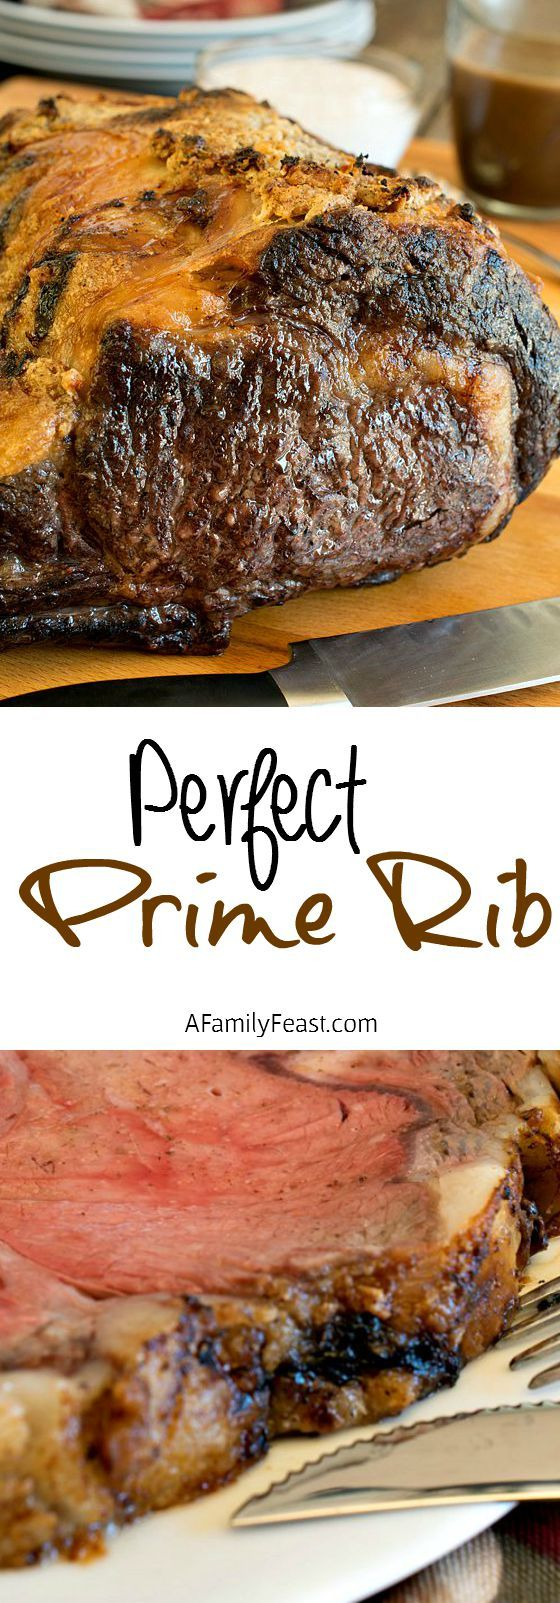 How to cook Perfect Prime Rib - We share tips and tricks learned in culinary school so you can make perfectly cooked Prime Rib at home!